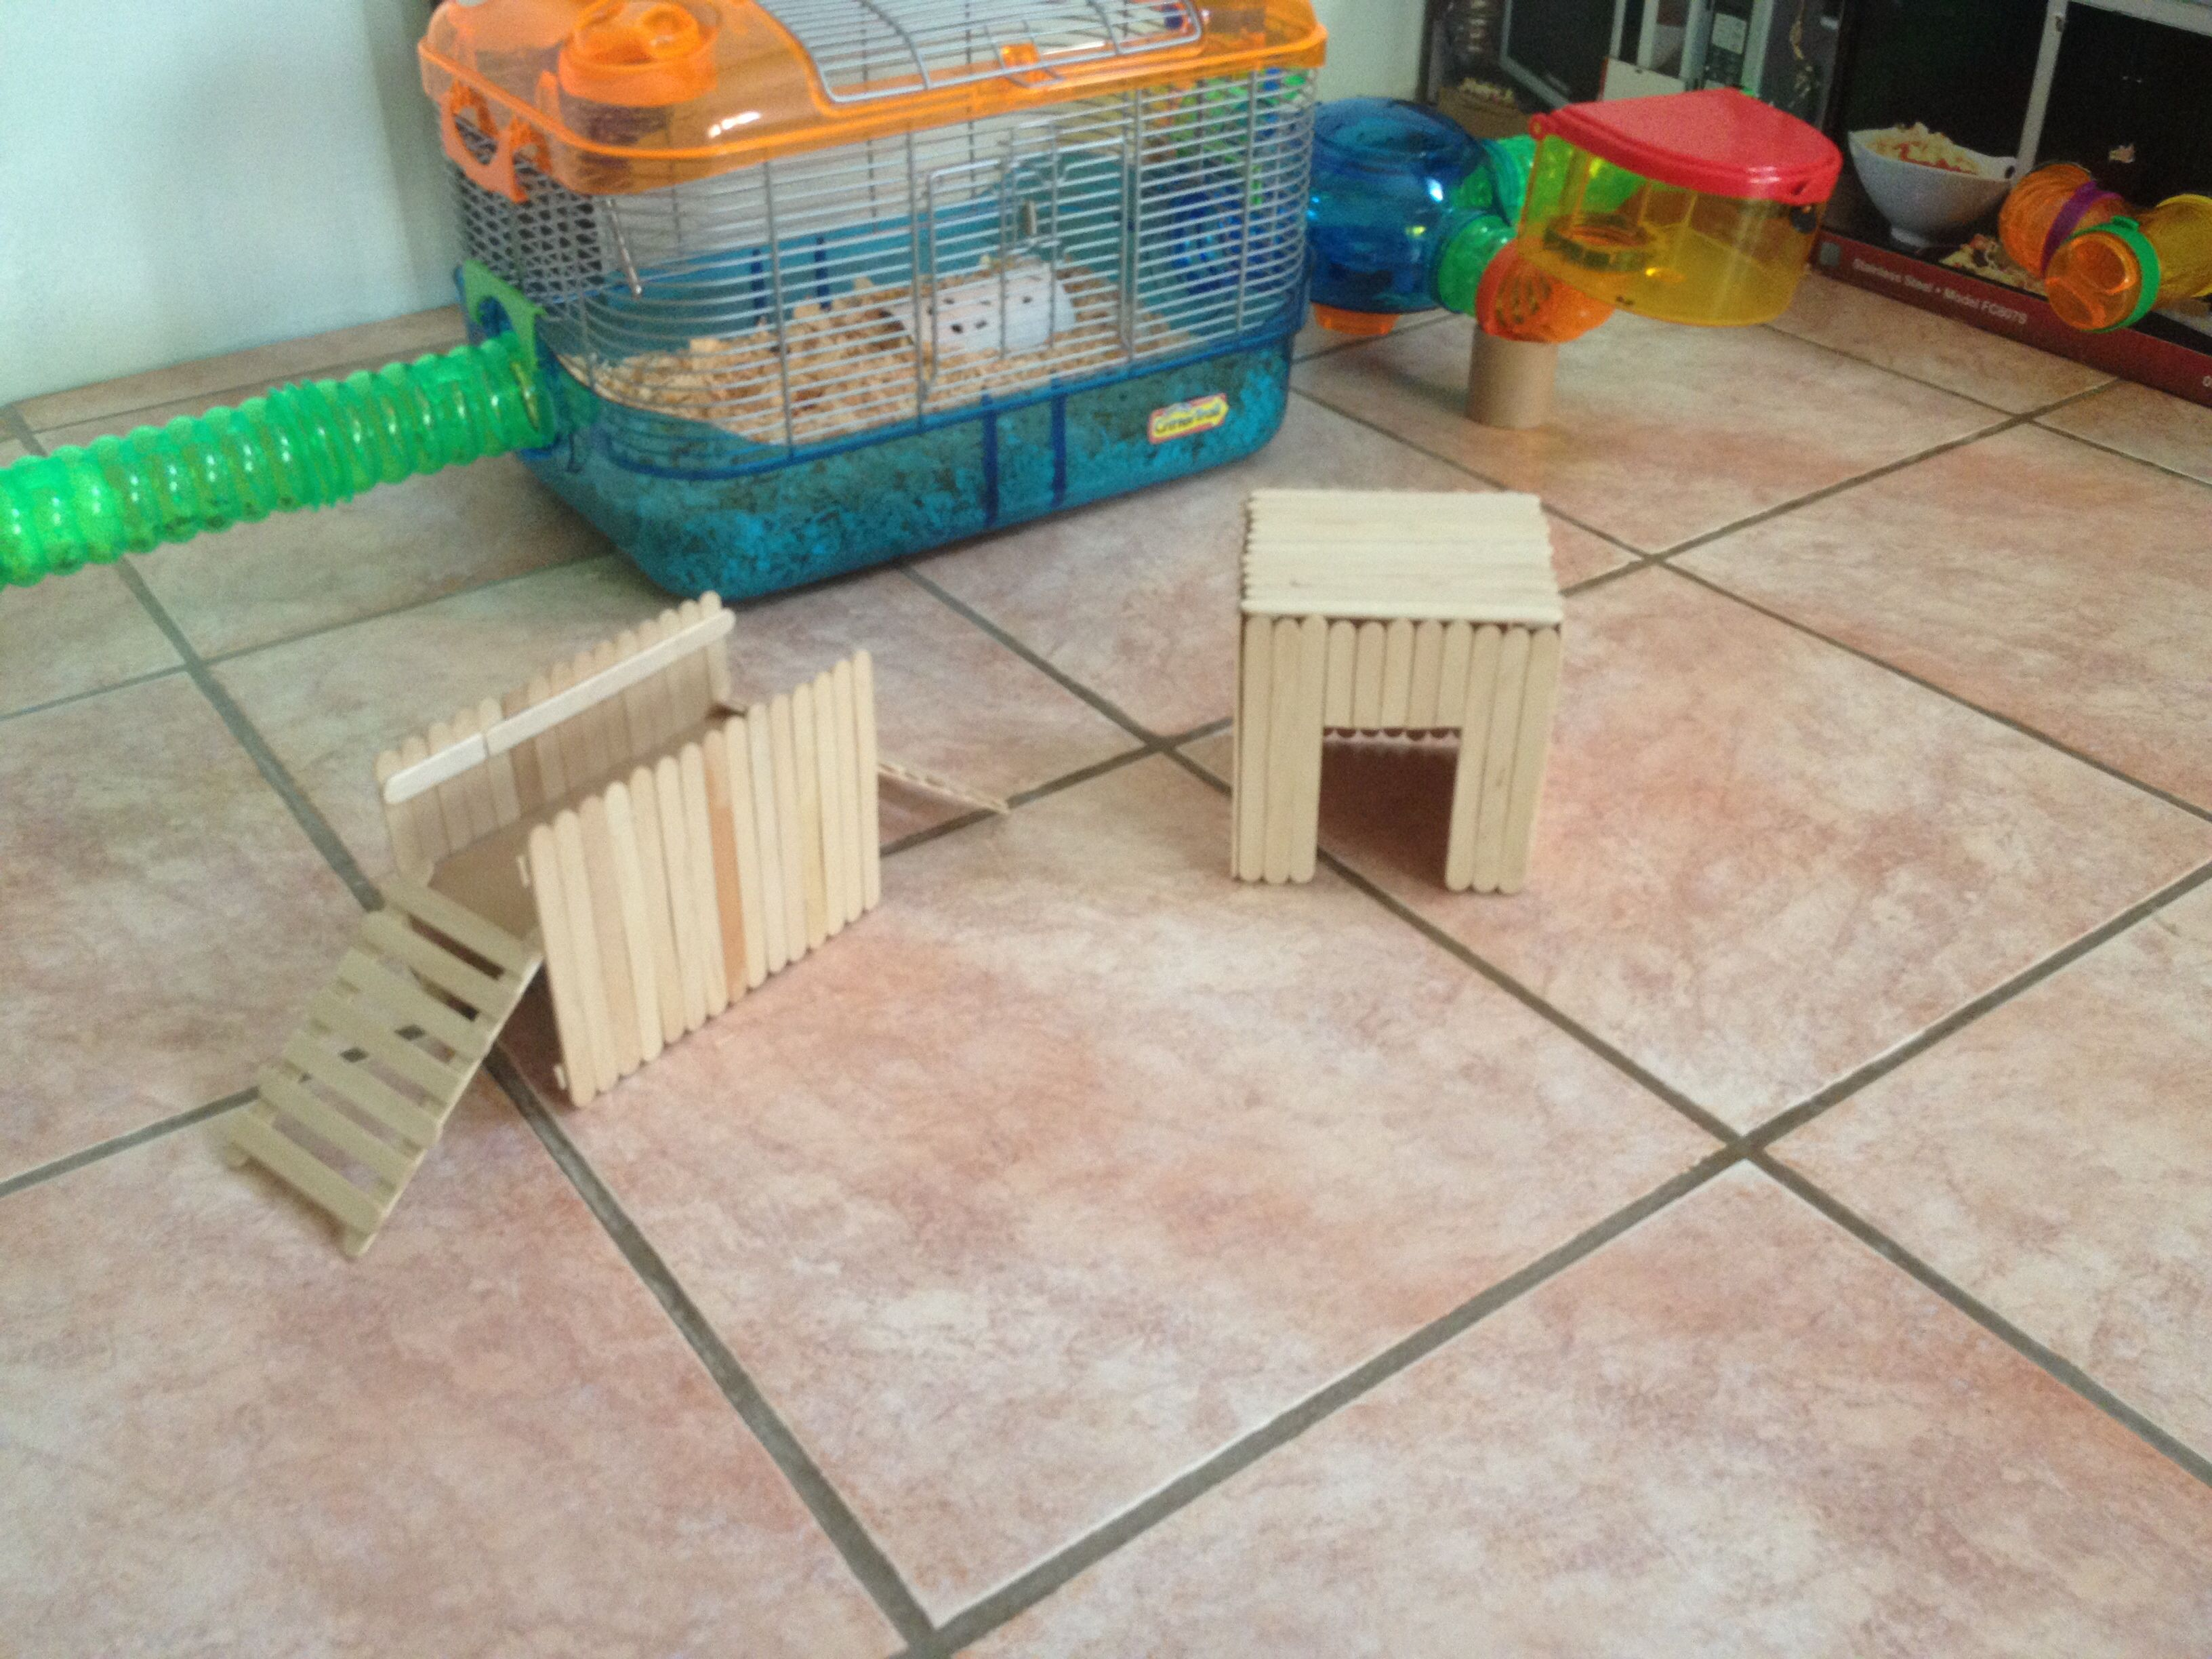 Diy hamster popsicle sticks my hamster diy projects for How to make things out of sticks